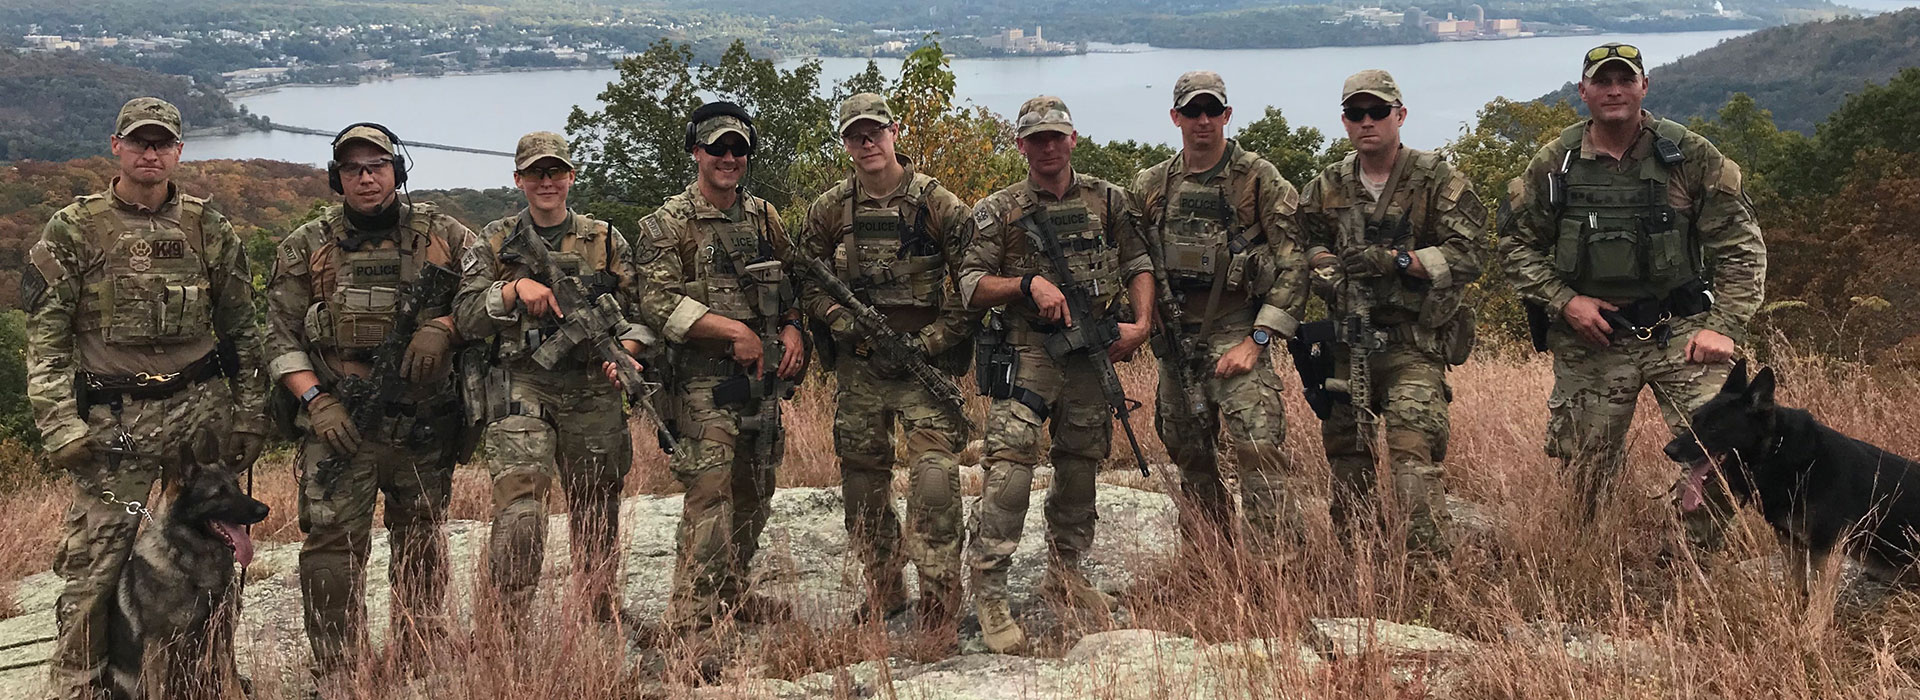 Justanna Bohling is pictured with her fellow Special Operations Group following a mission to search for a fugitive wanted for murder.